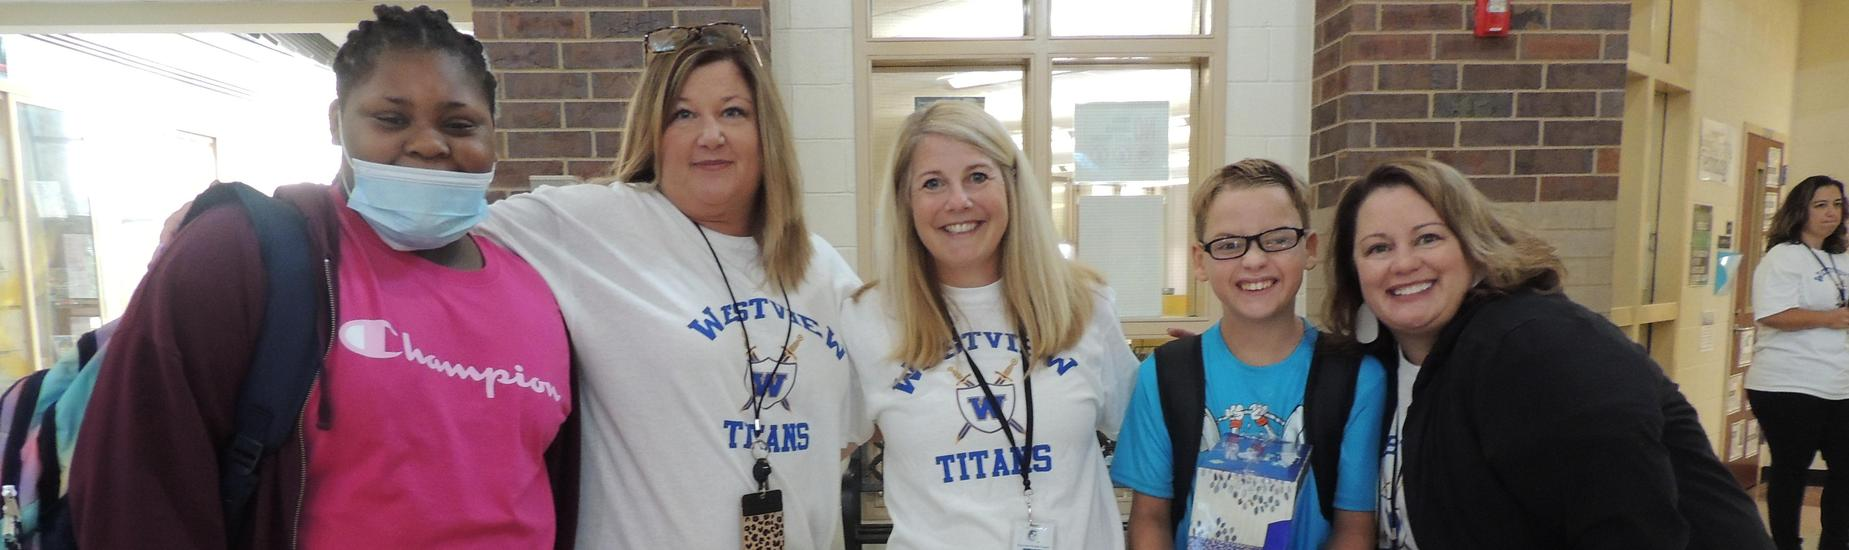 Ms. Cullens, Mrs. Sanders, Mrs. Bolick and Westview students